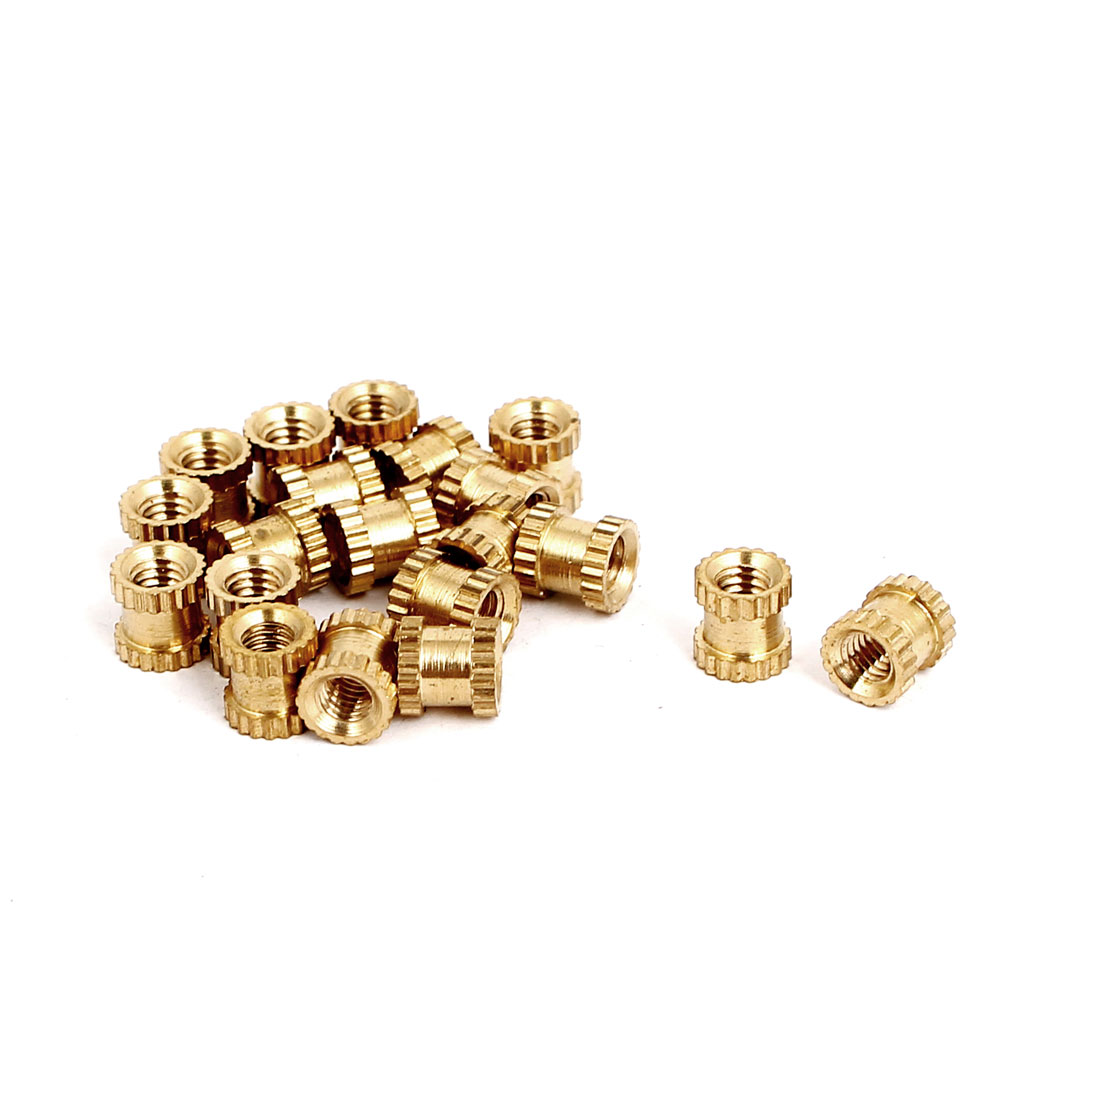 M3x5mmx5mm Female Threaded Brass Knurled Insert Embedded Nuts Gold Tone 20pcs